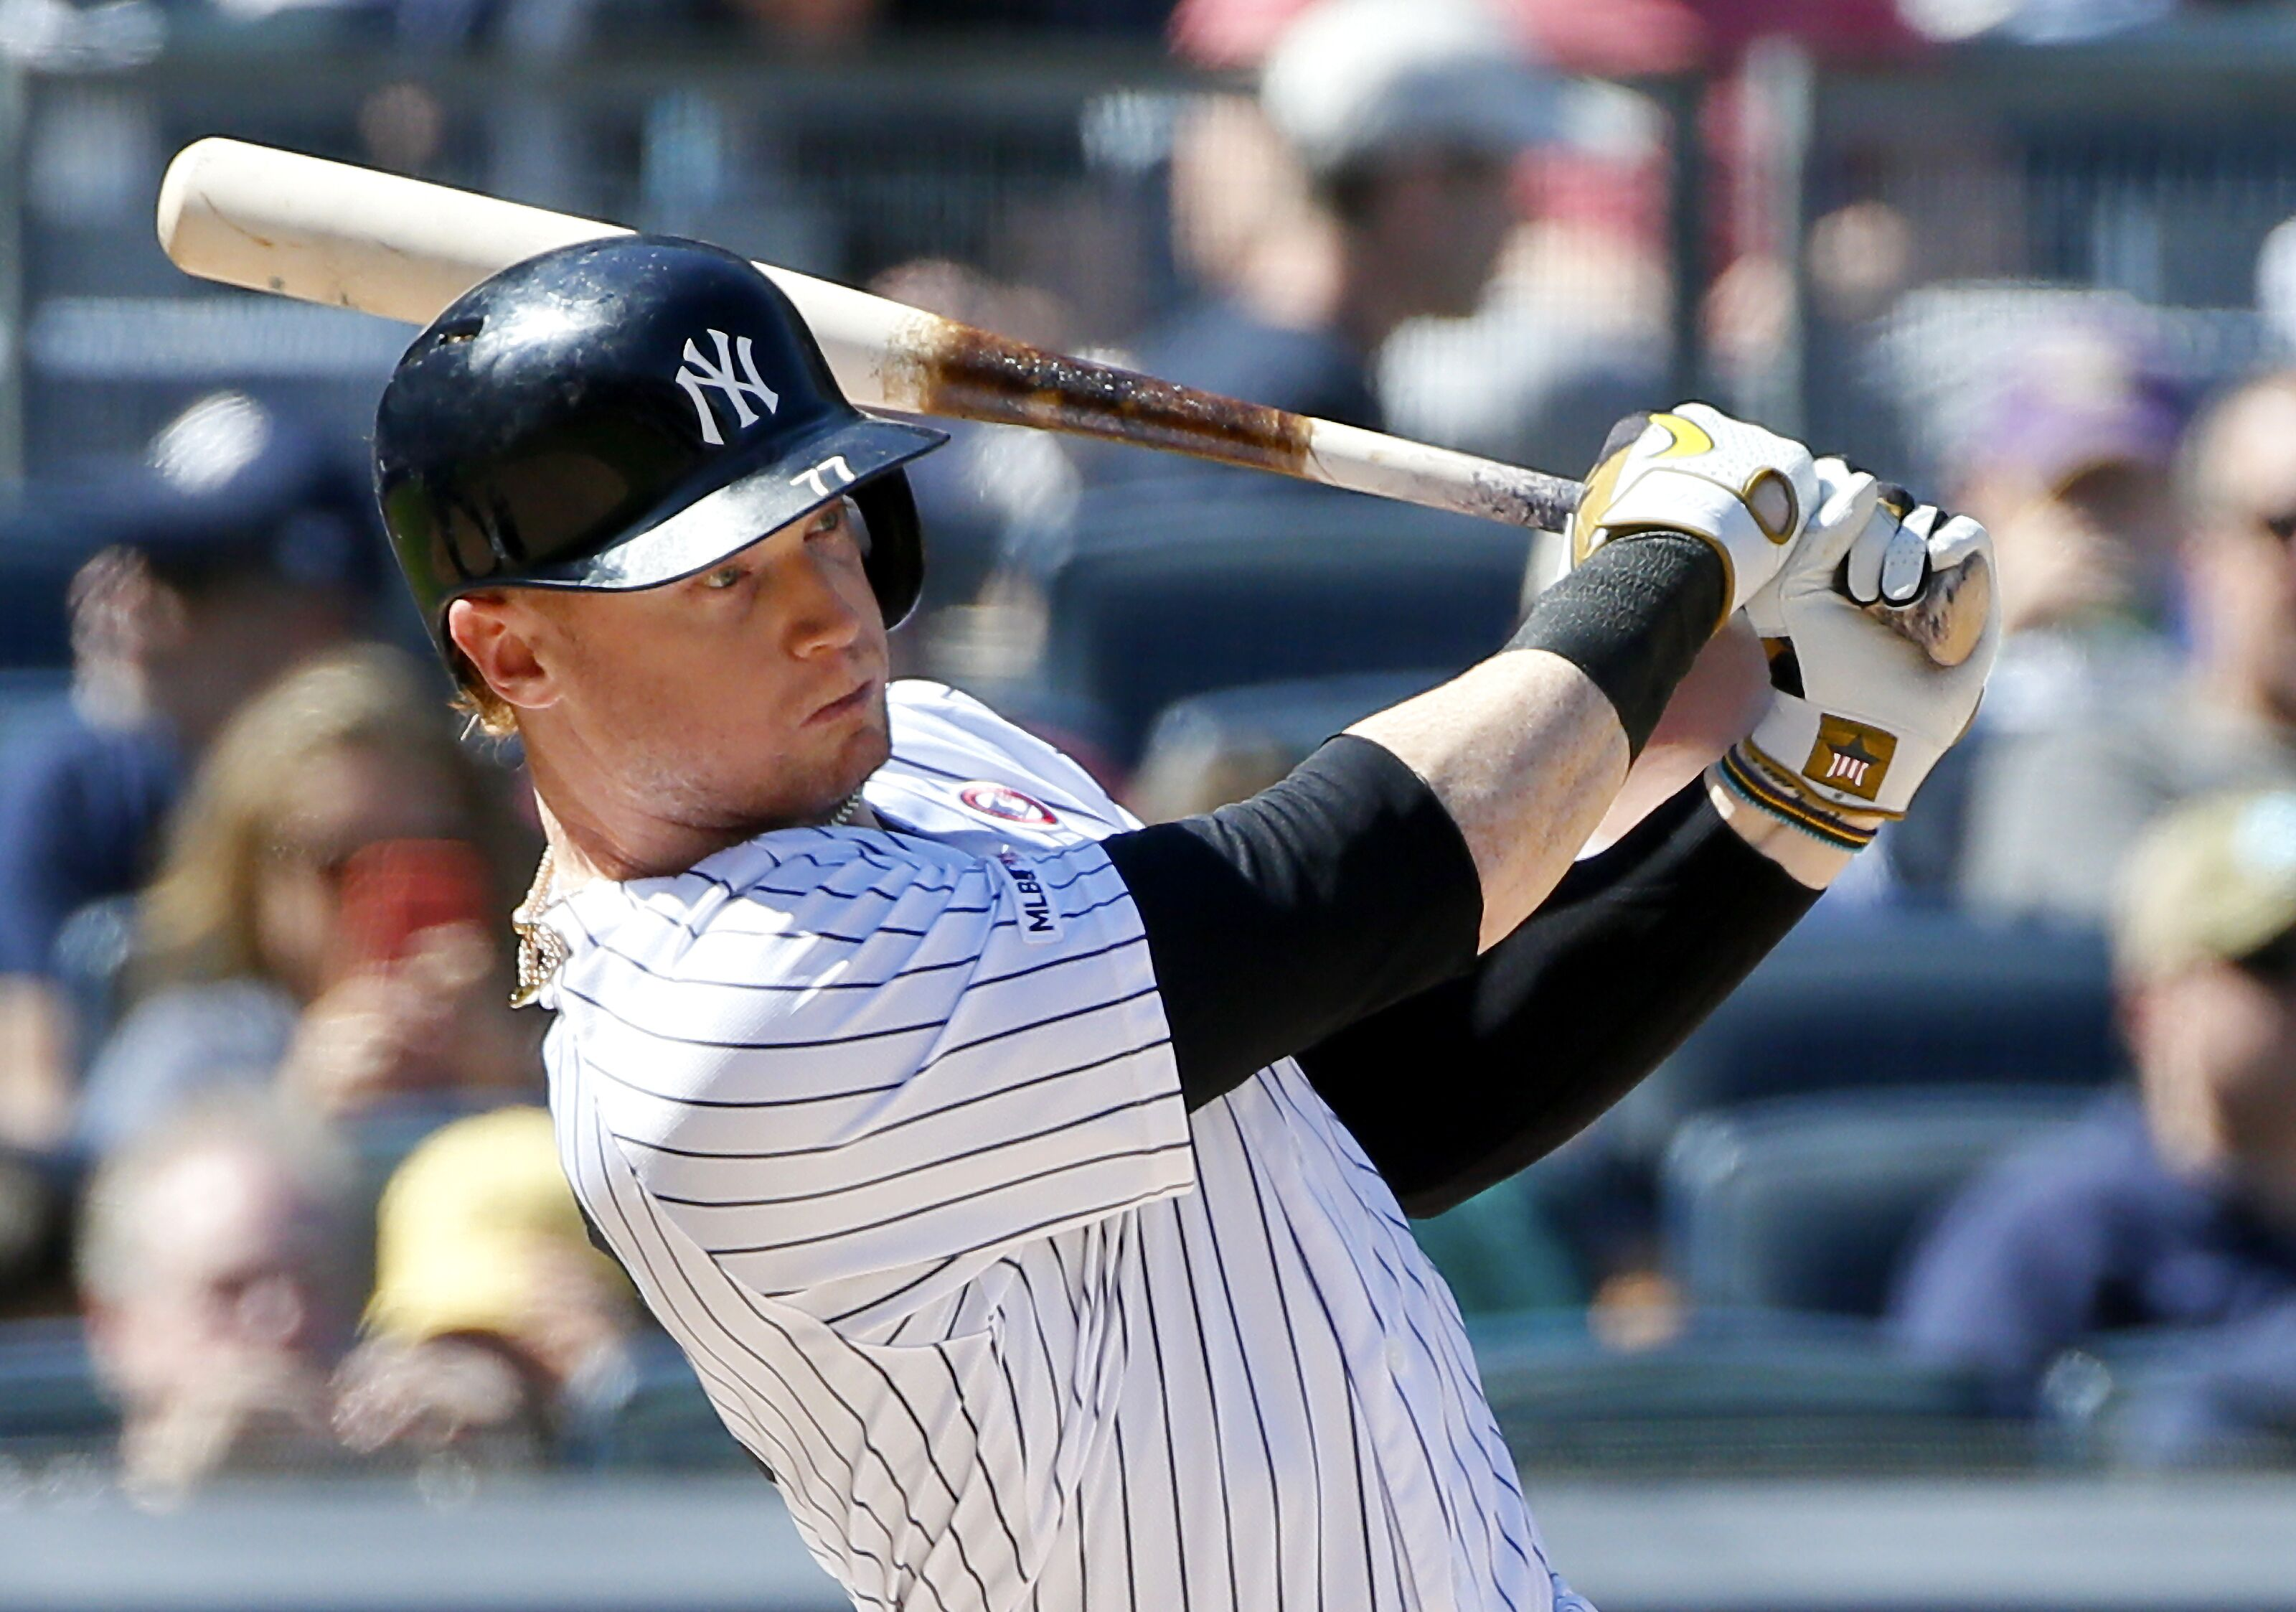 New York Yankees: Where Does Clint Frazier Stand?